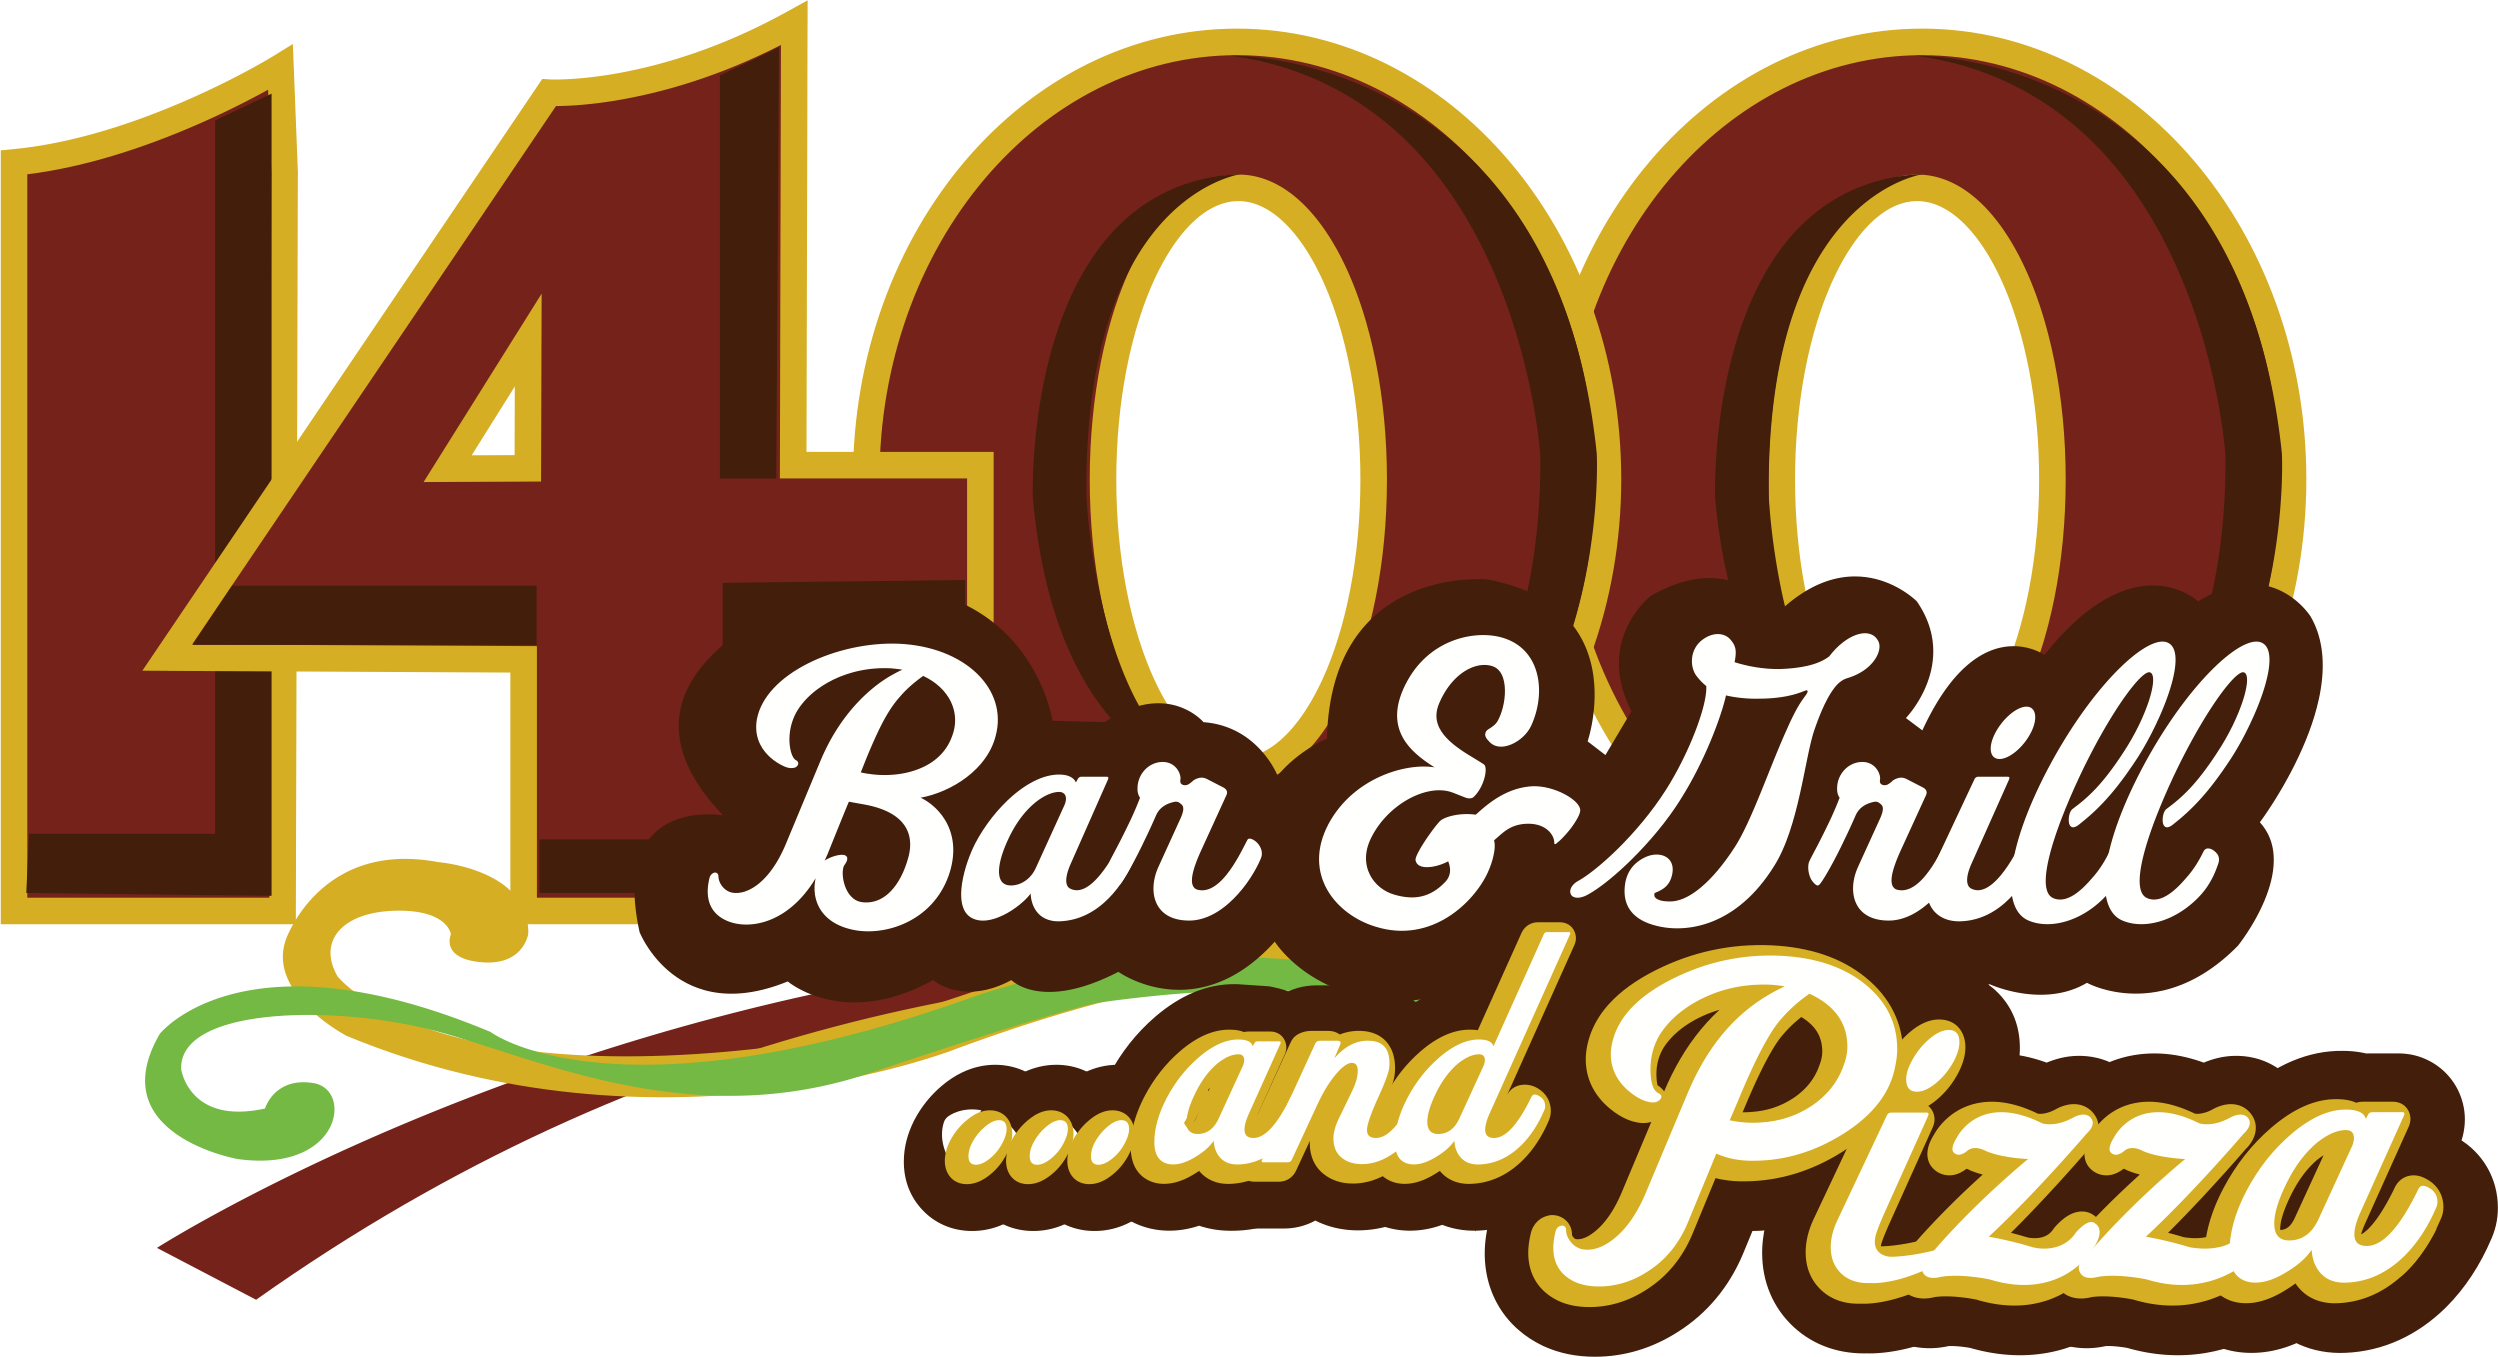 Bar and grill png. Pizza welcome to